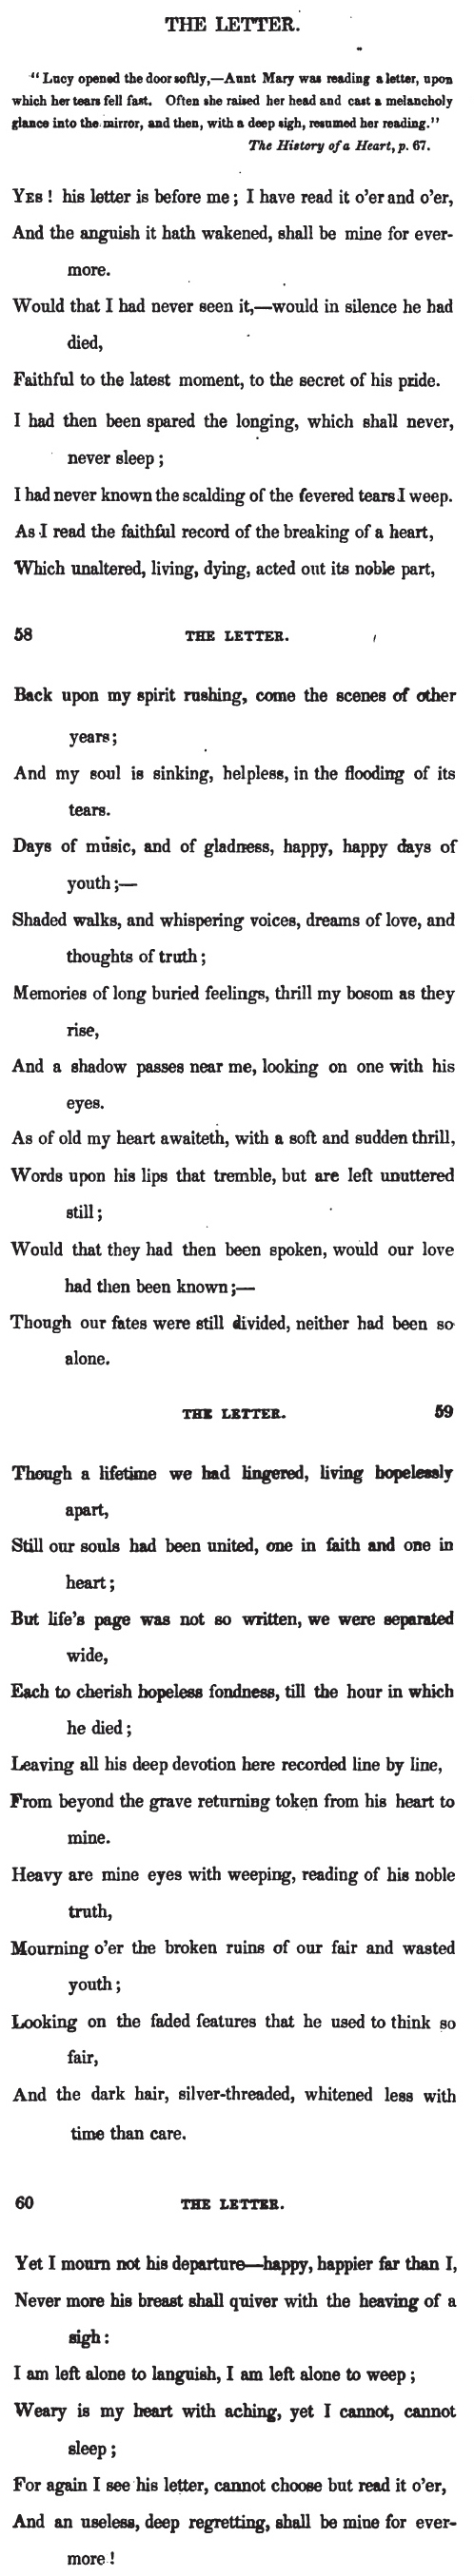 """Harriette."" [Harriet Annie ]. ""The Letter."" Rose Buds: or, Constantia and Other Poems. New York: Green & Spencer, 1849. 57-60."